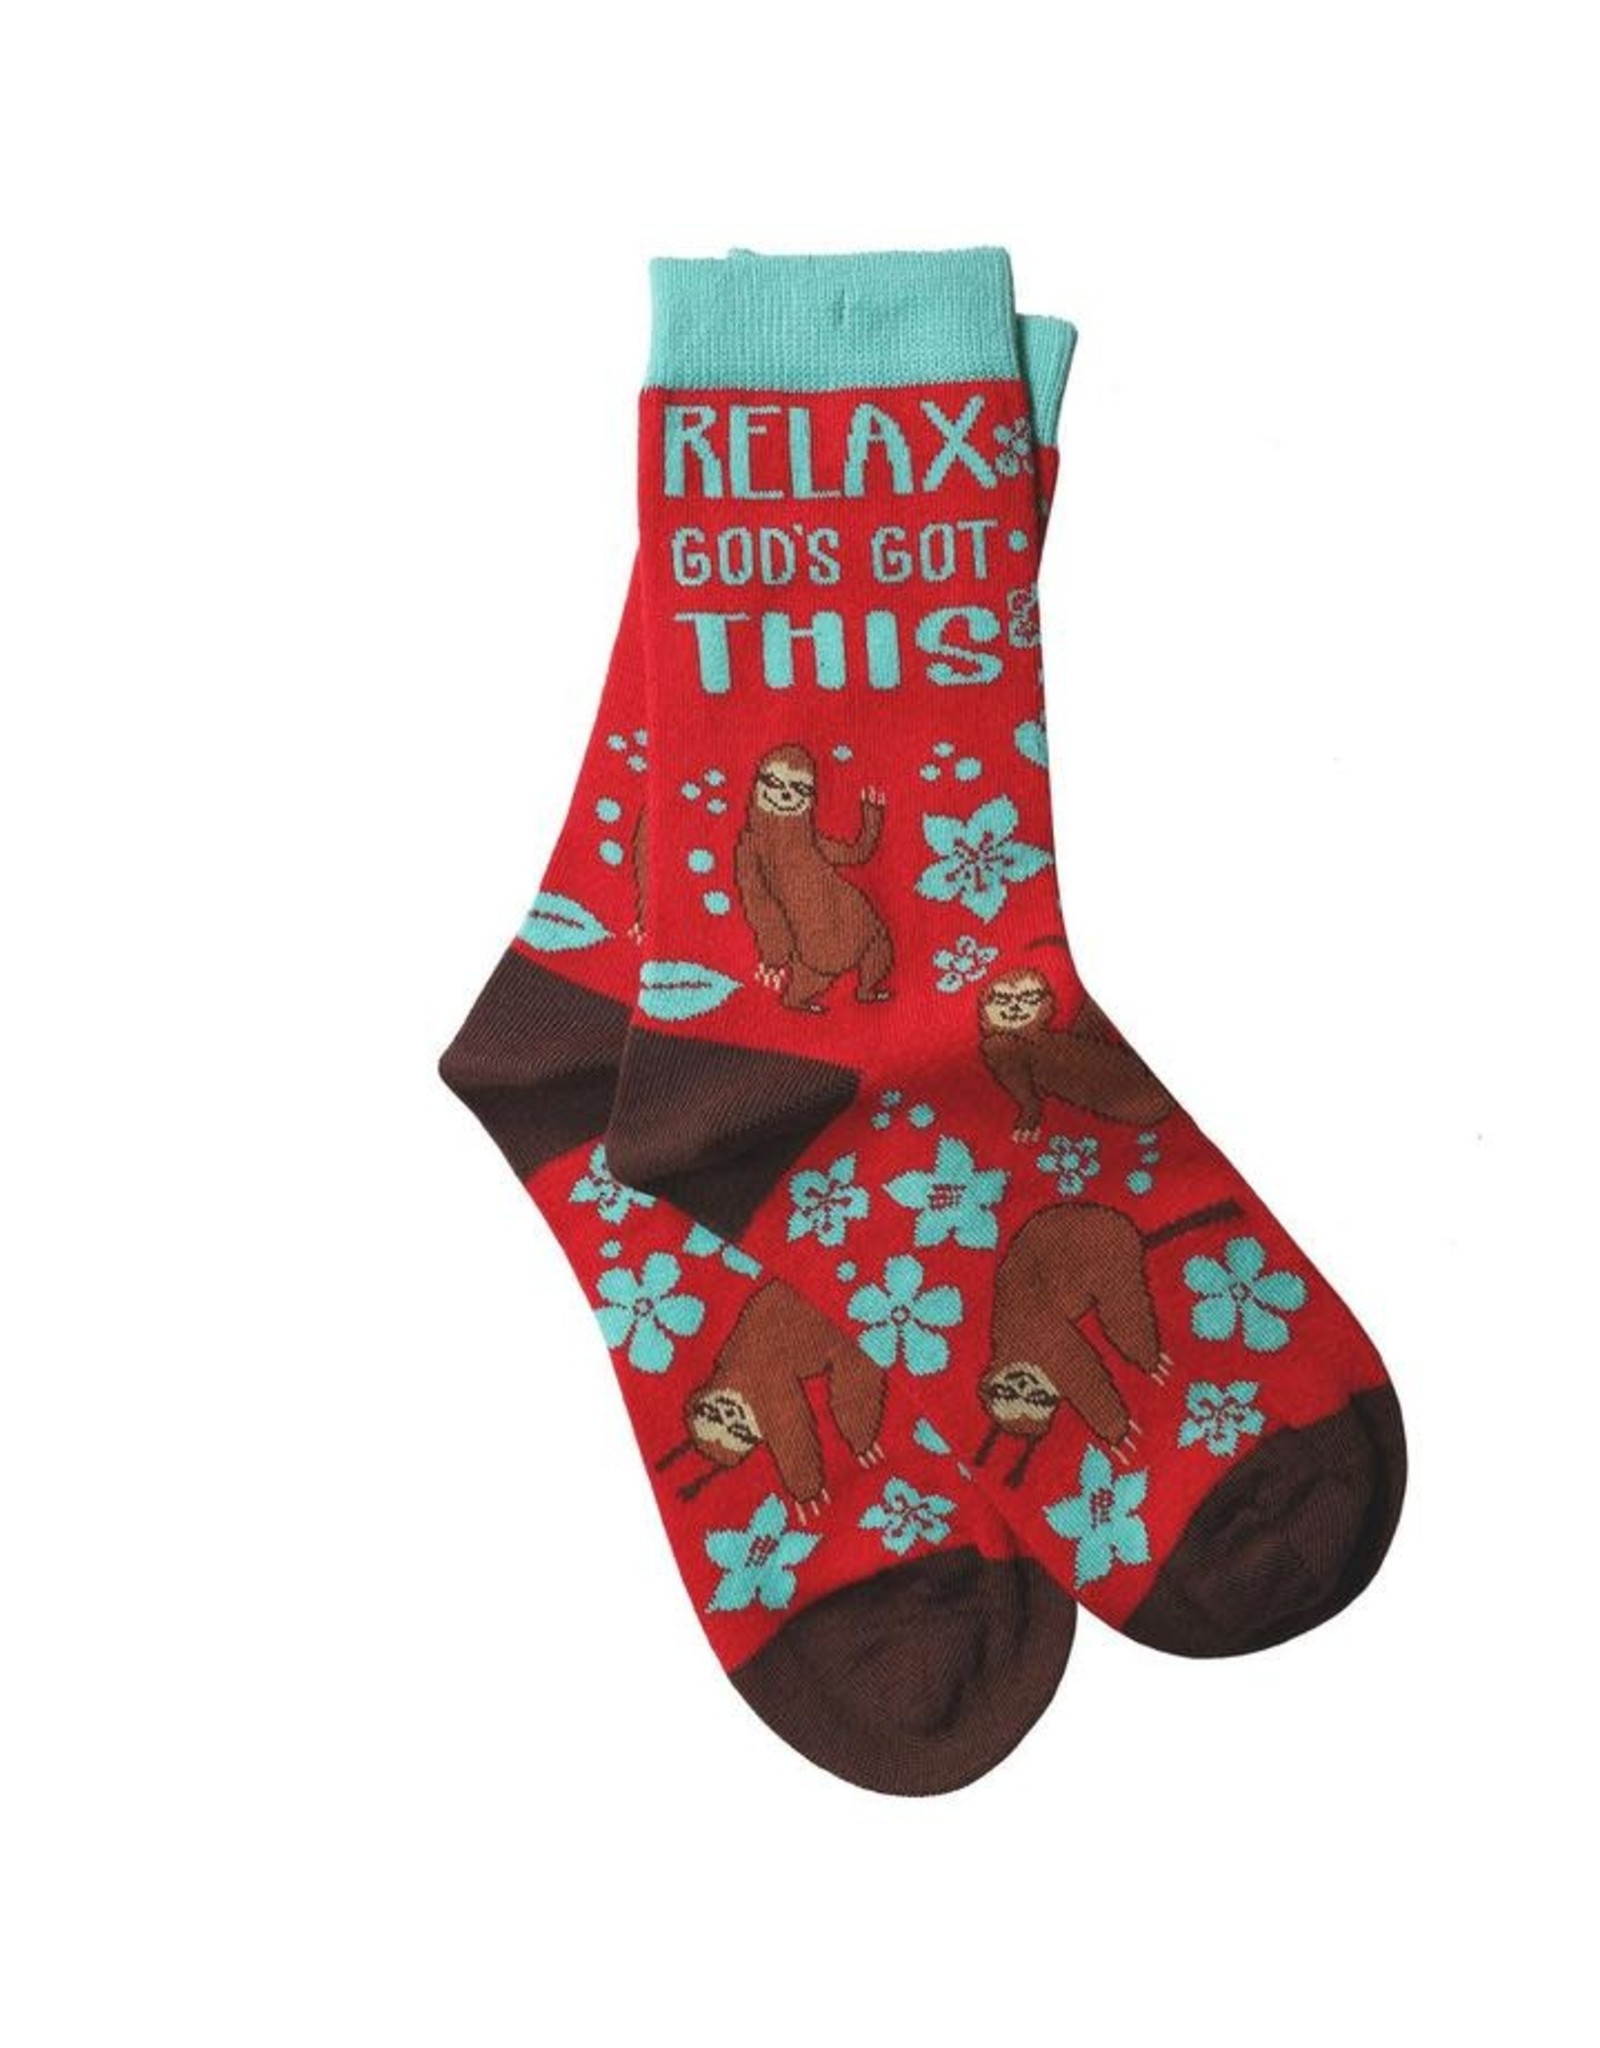 Bless My Sole Socks - Relax Sloth